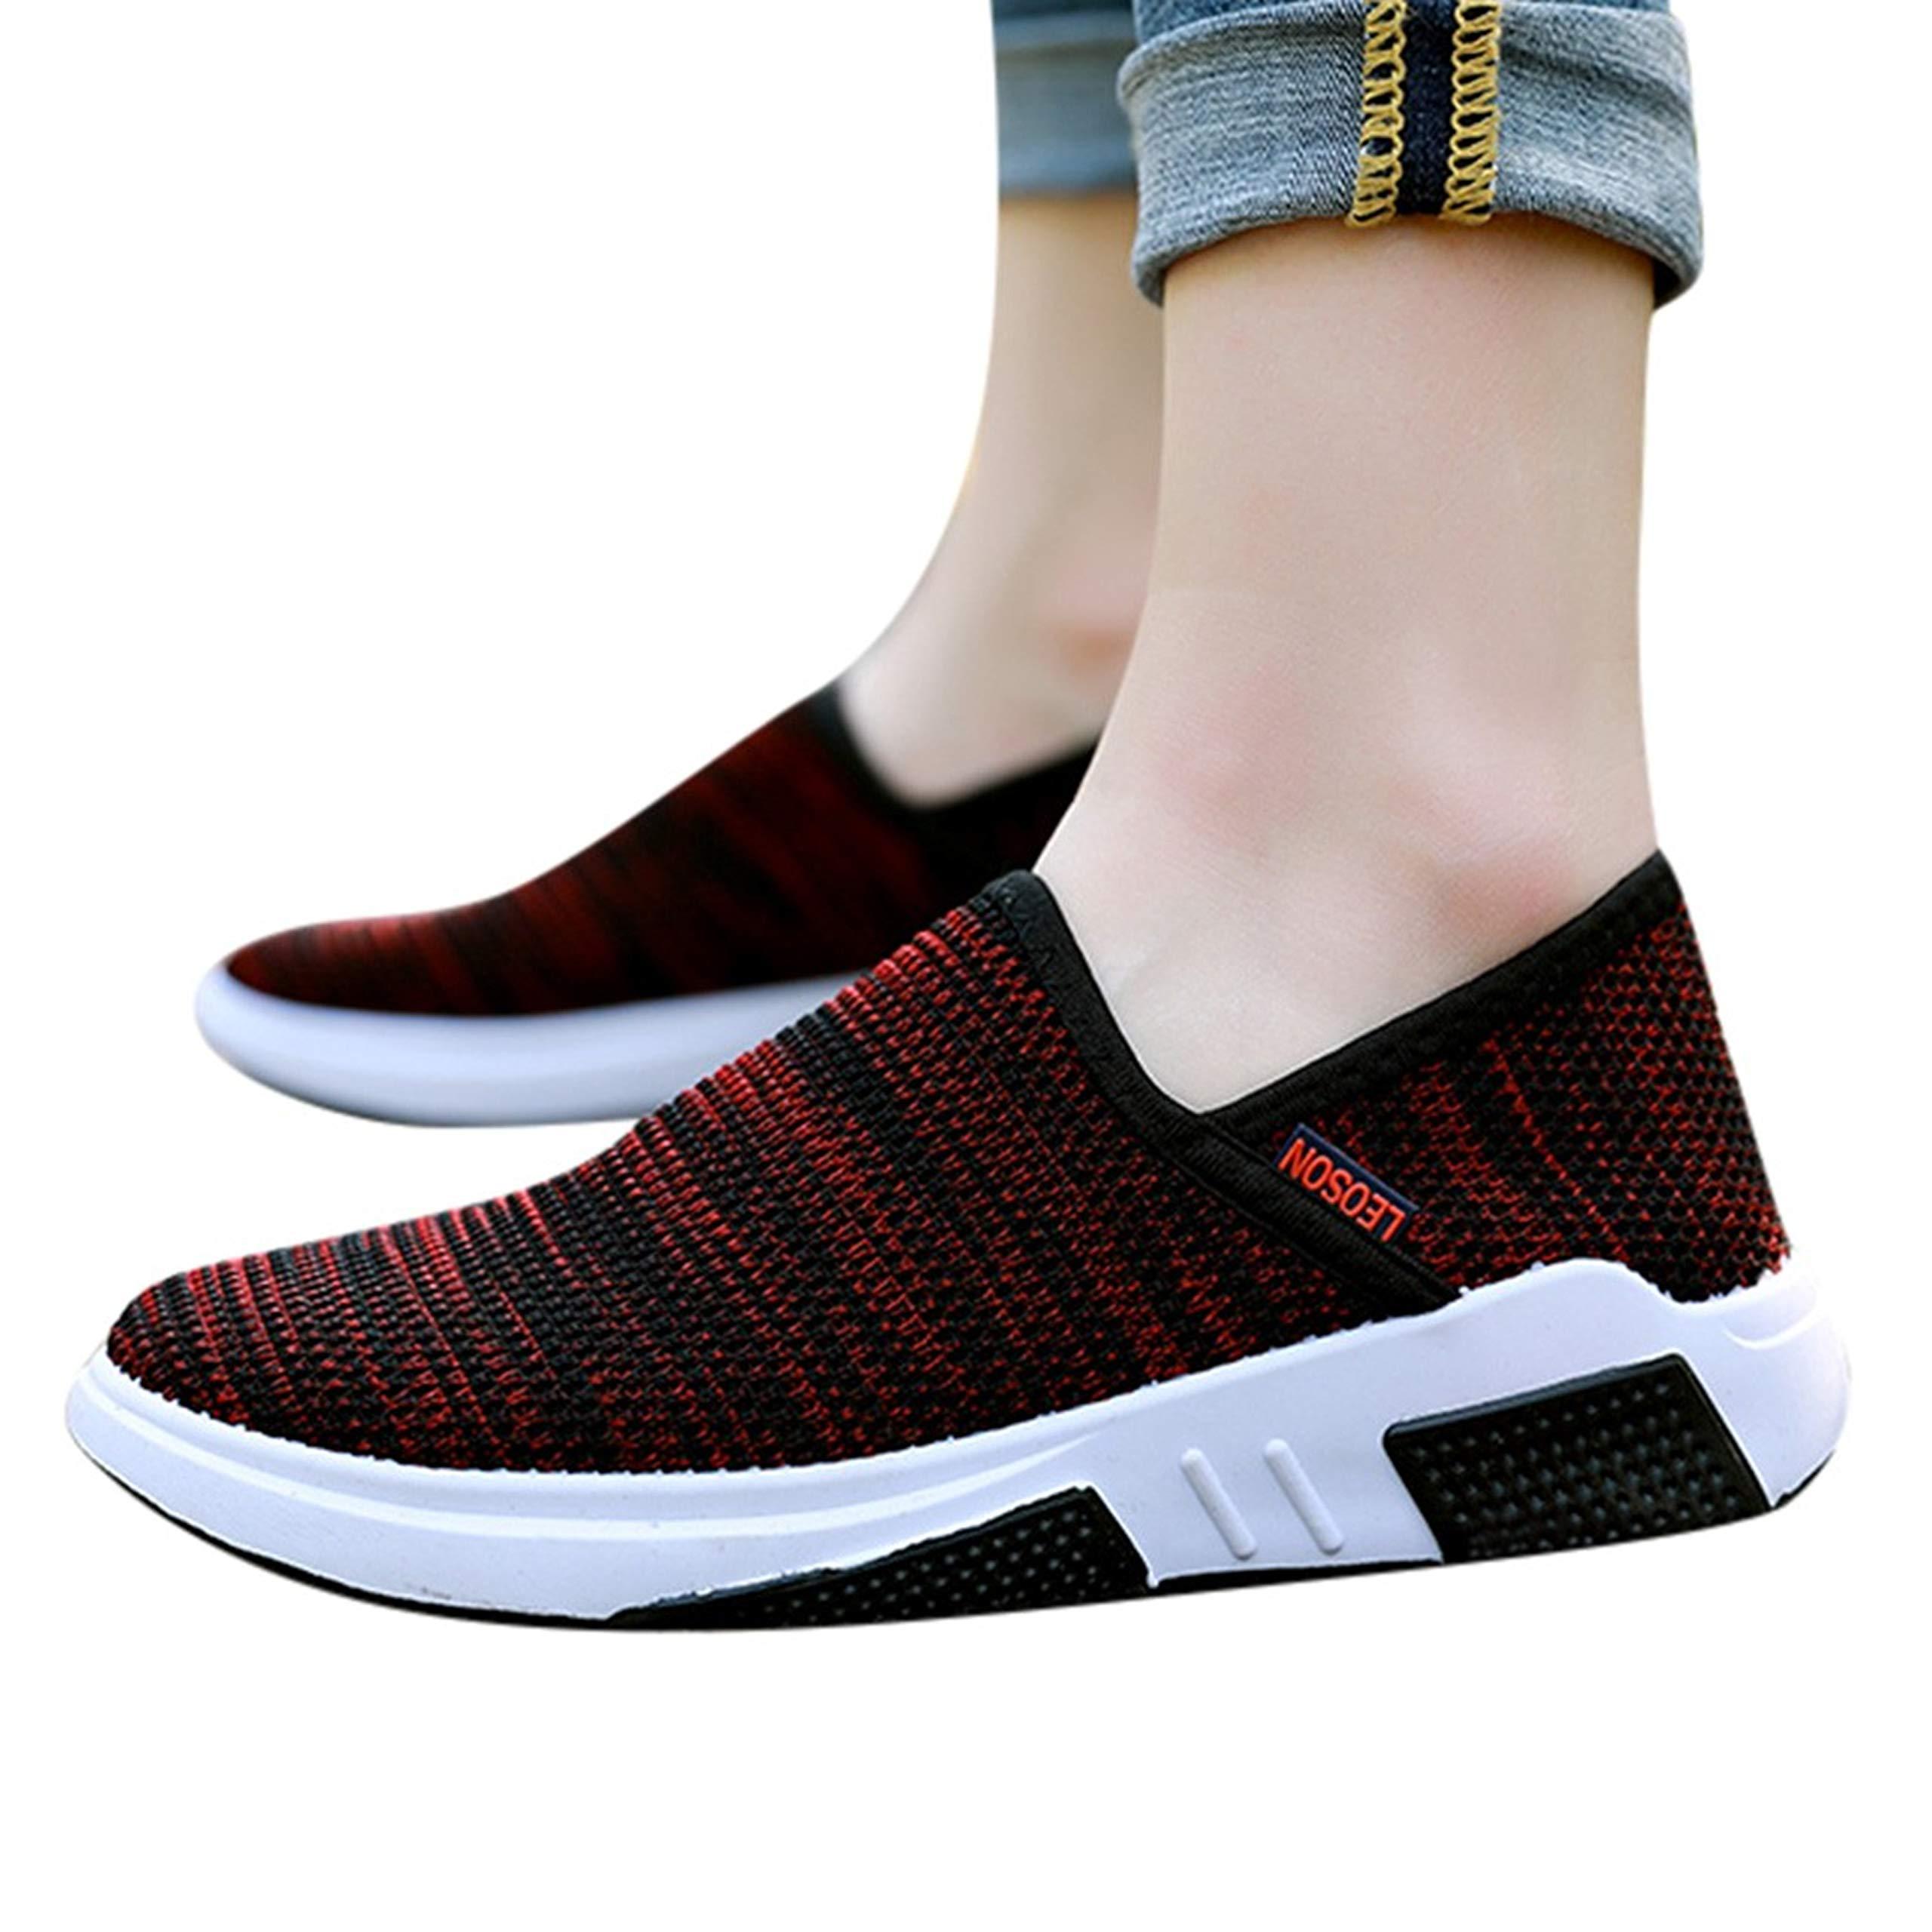 Goldweather Women Walking Sneakers Shoes Comfortable Mesh Sports Casual Running Shoes Lightweight Slip-On Low-Top Trainers Athletic Shoes (Red, US:7.5) by Goldweather